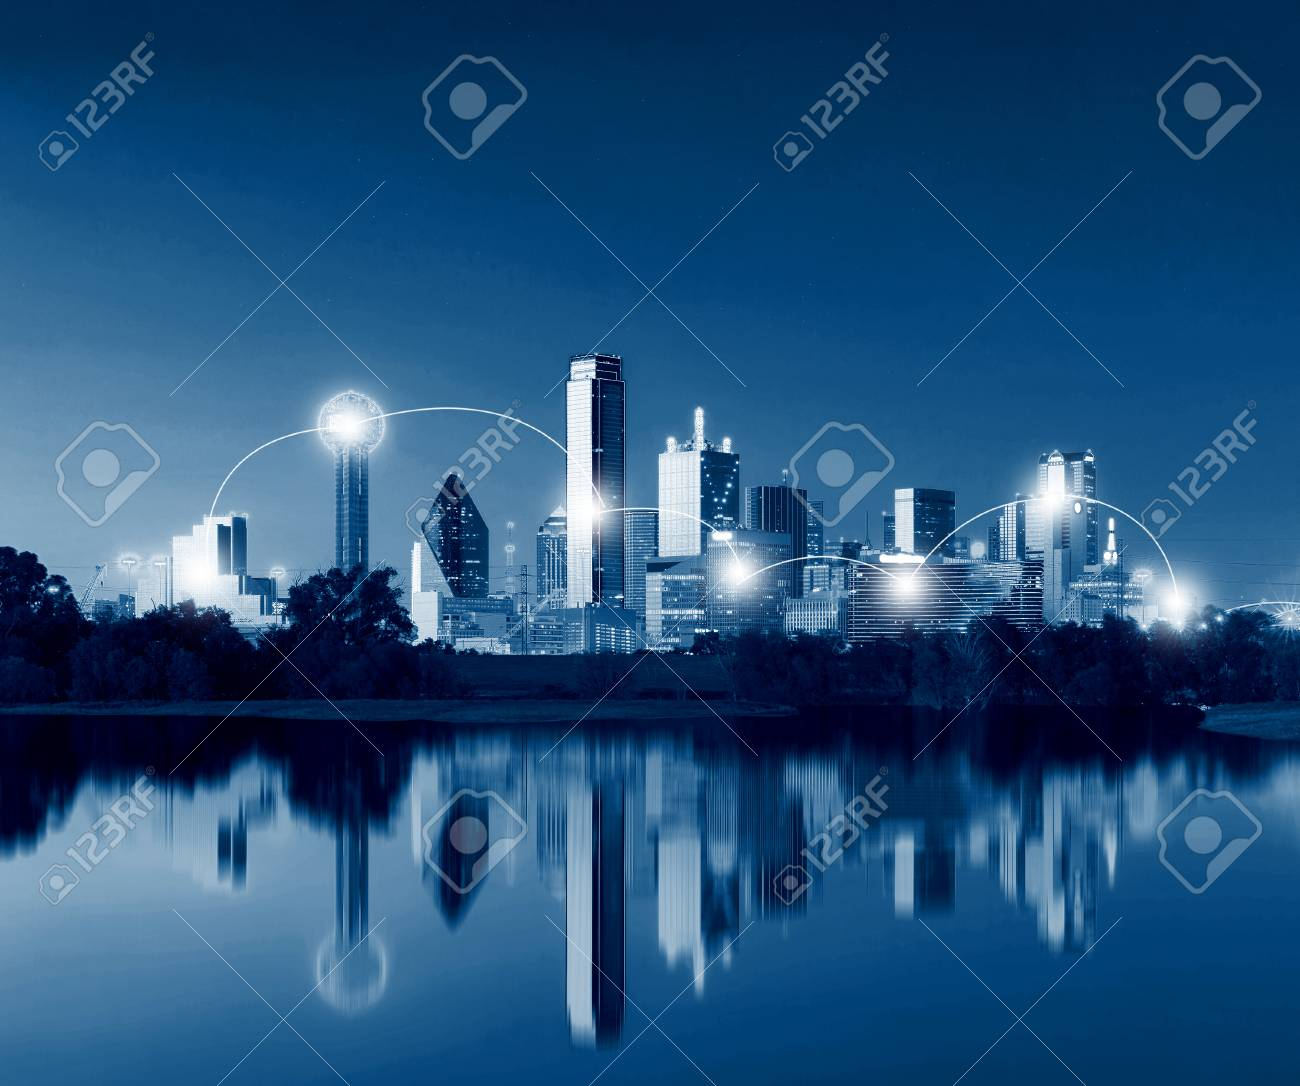 Network and Connection Technology Concept of Dallas Skyline Reflection at Dawn, Downtown Dallas, Texas, USA - 74564591